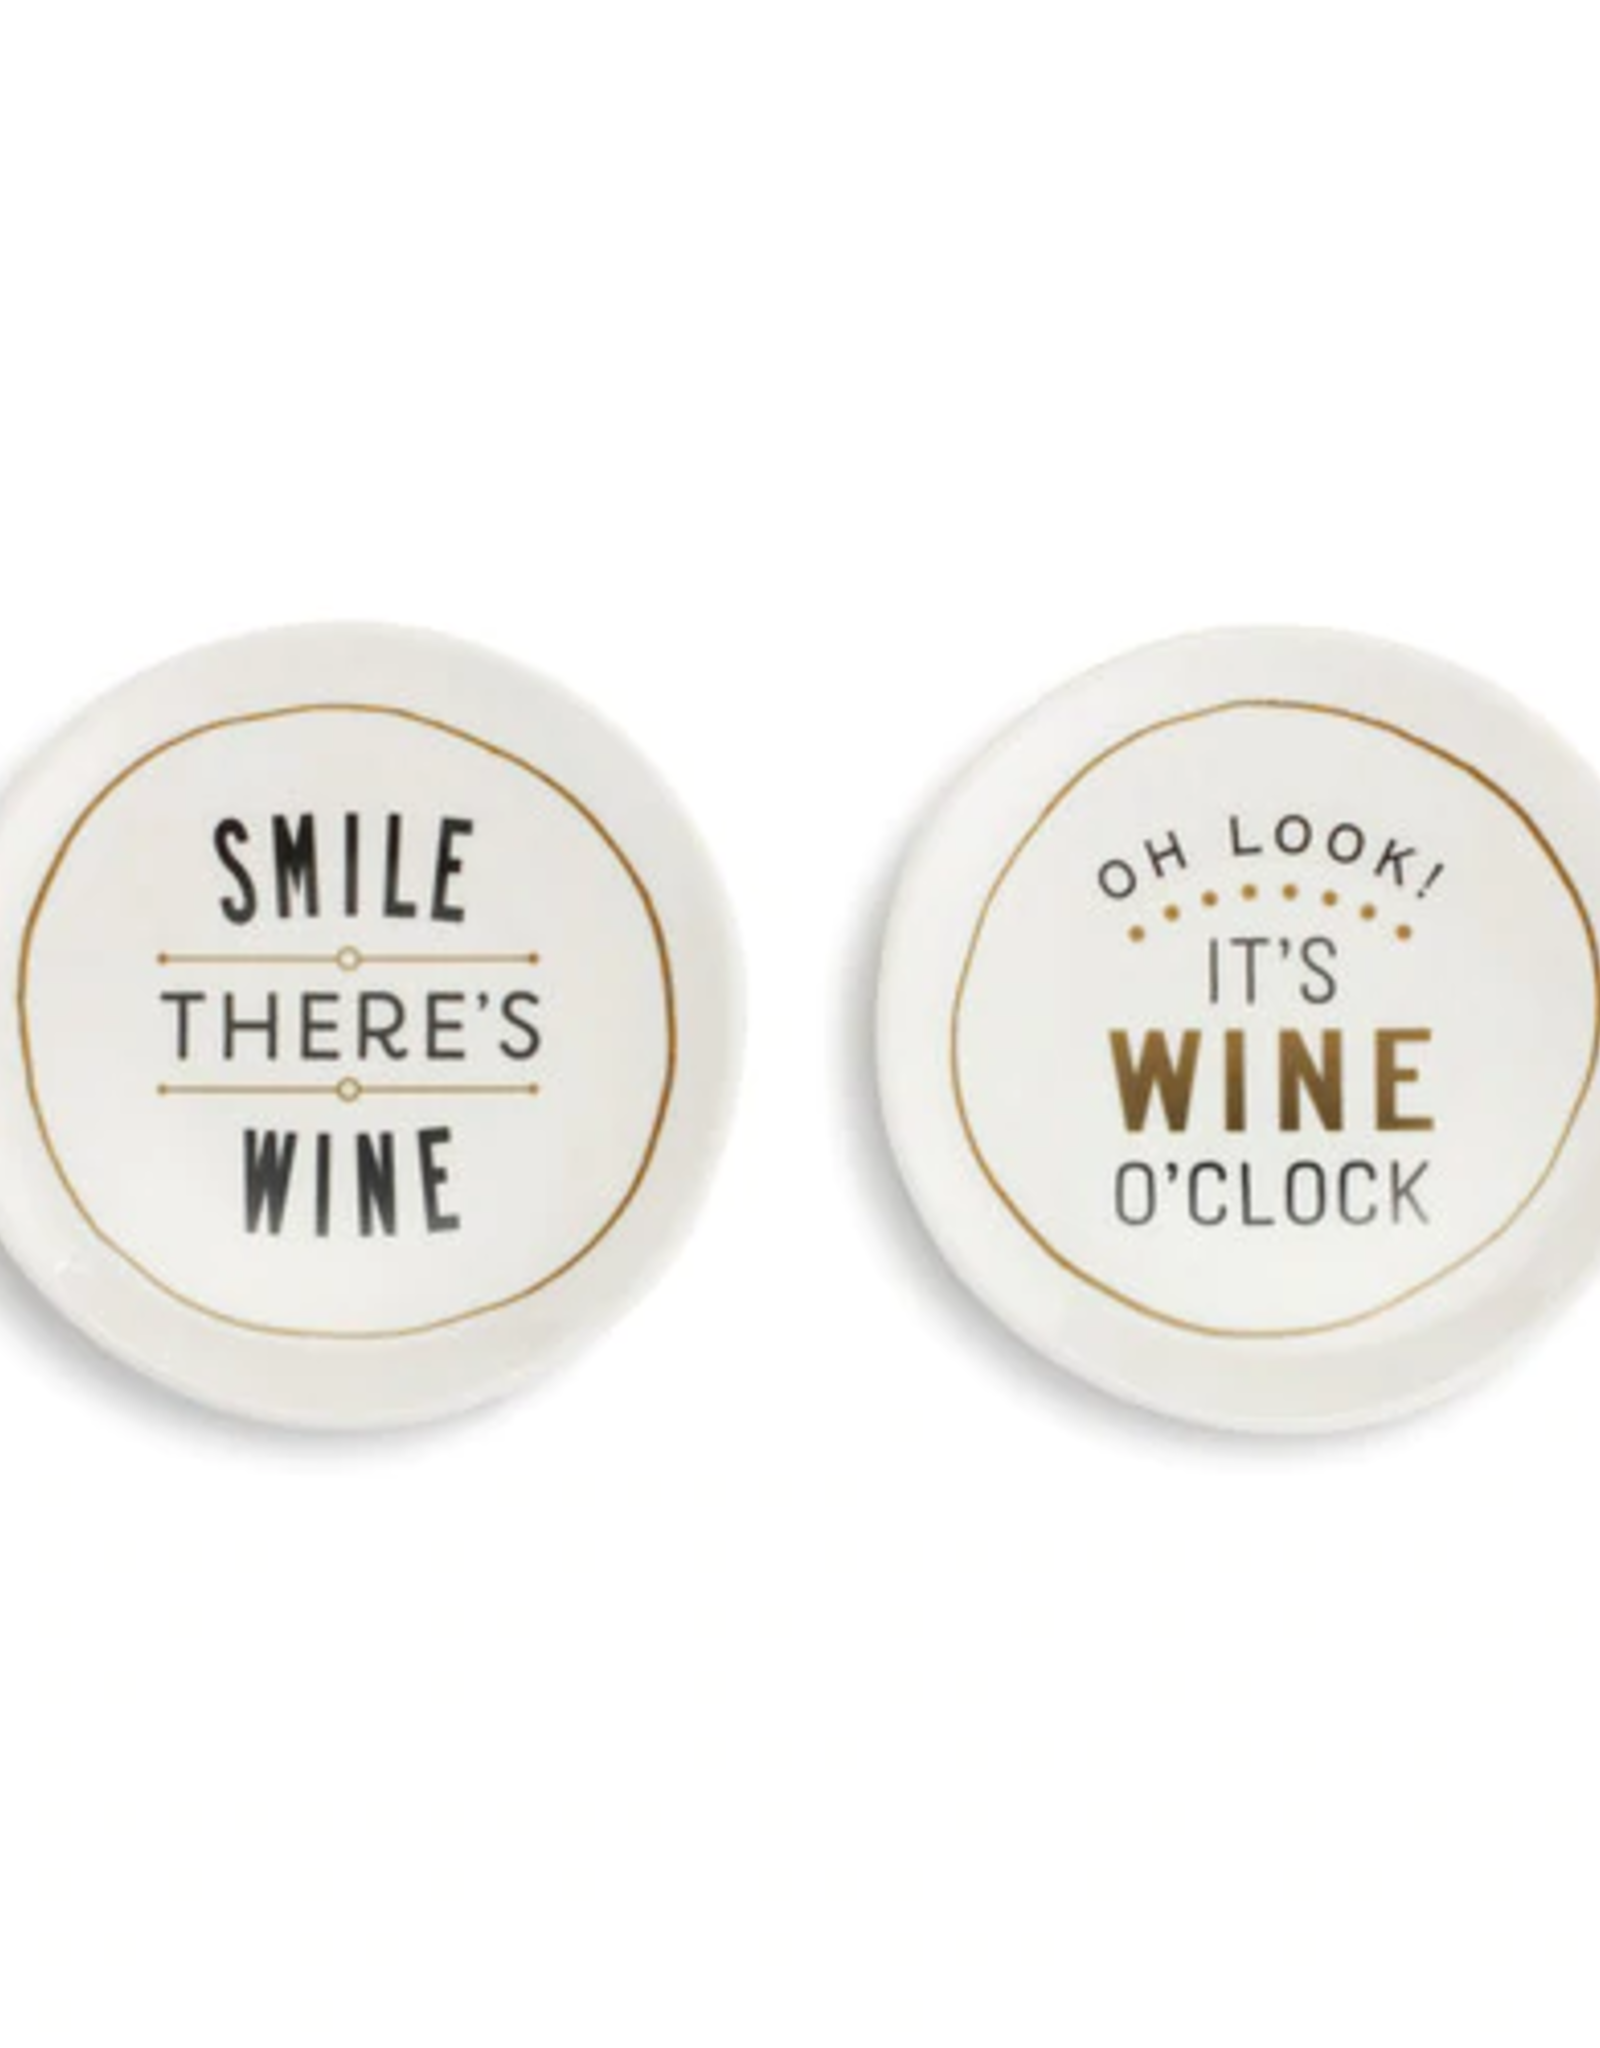 Appetizer Plates, Set of 2, Smile There's Wine